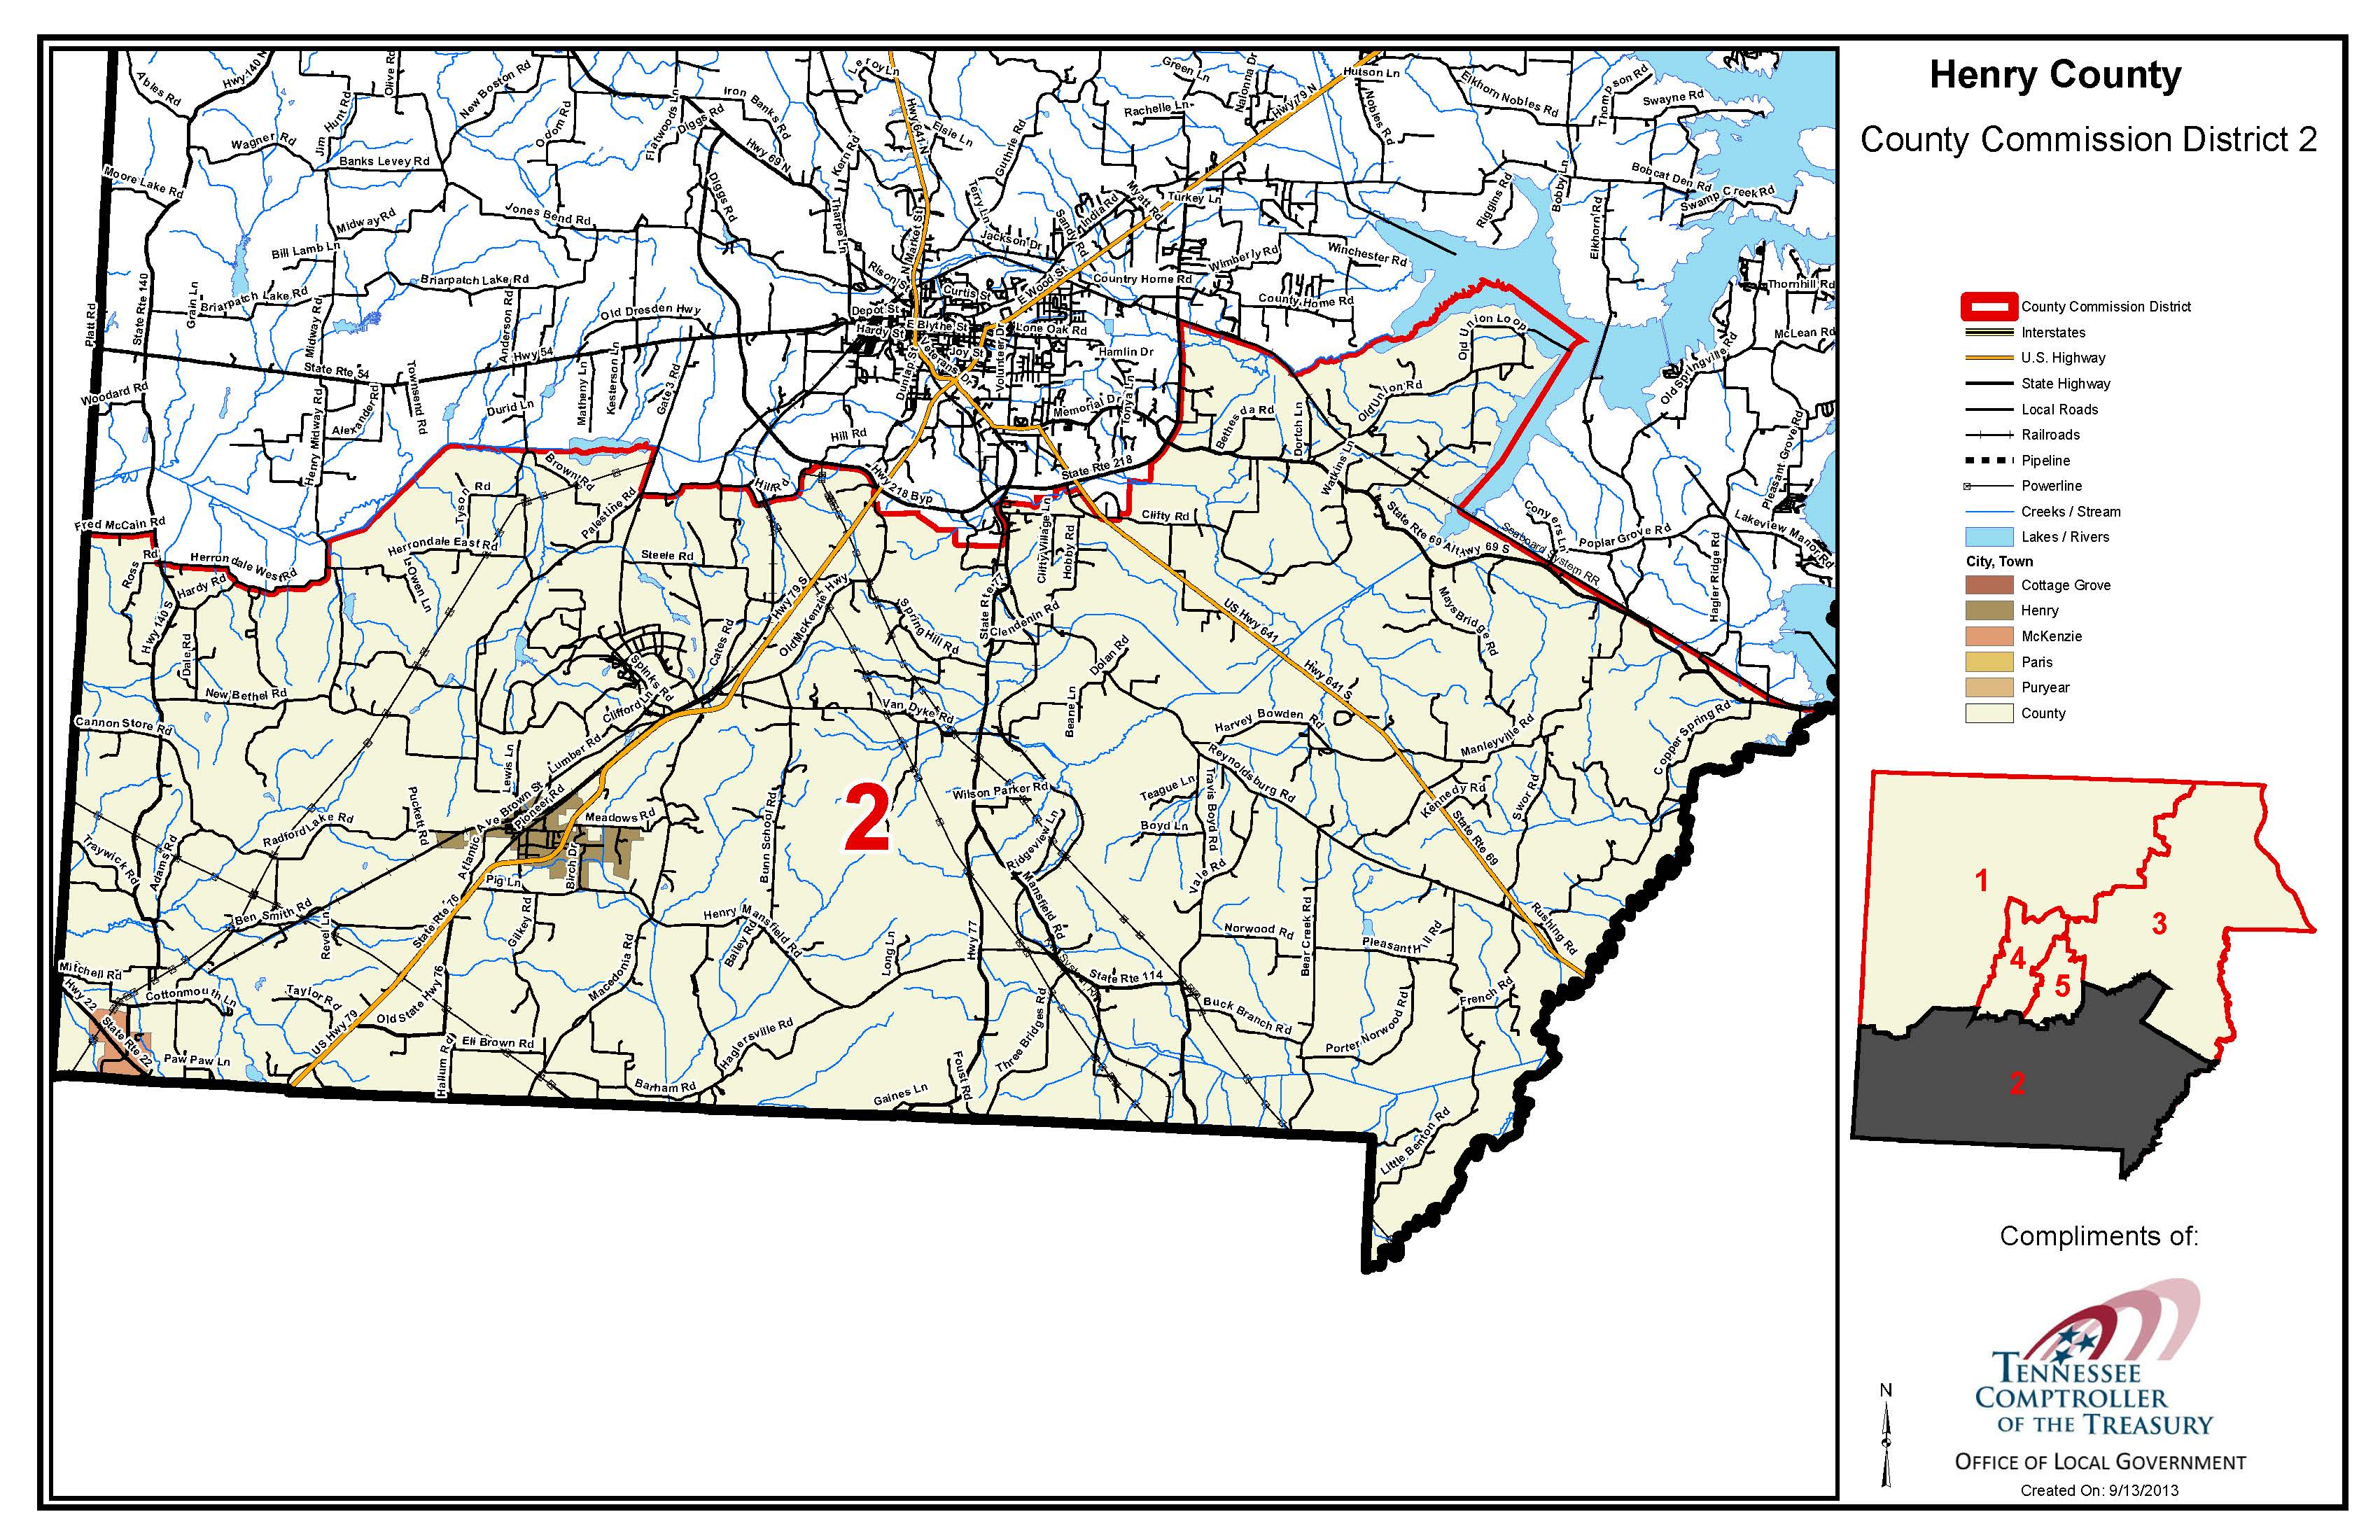 Commission District Maps | Official Site of Henry County TN